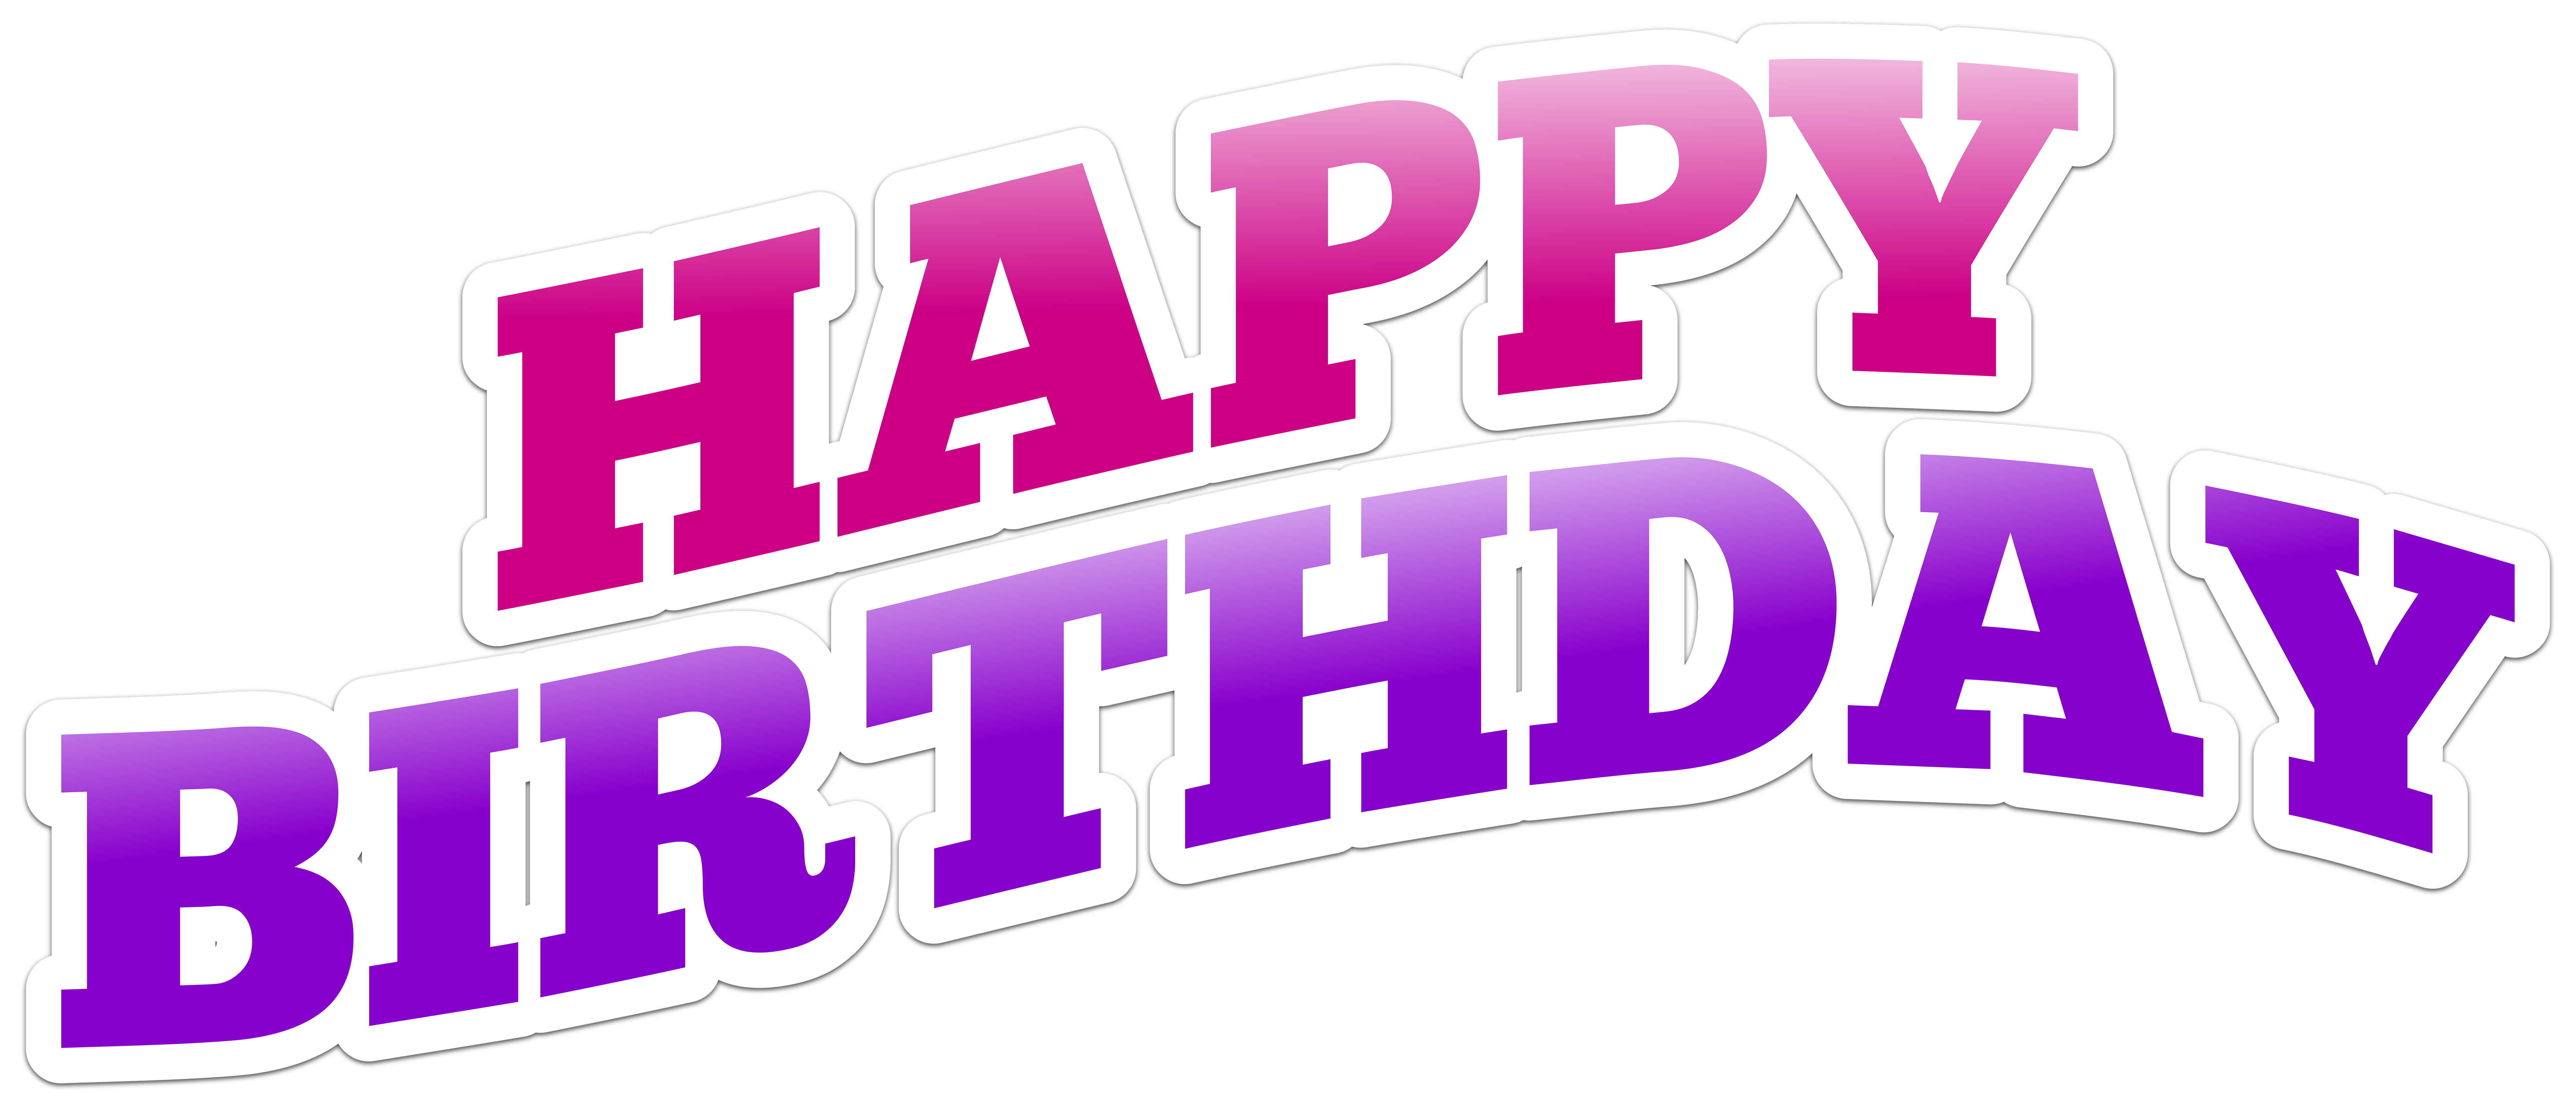 Happy Birthday Text PNG Clip Art Image.